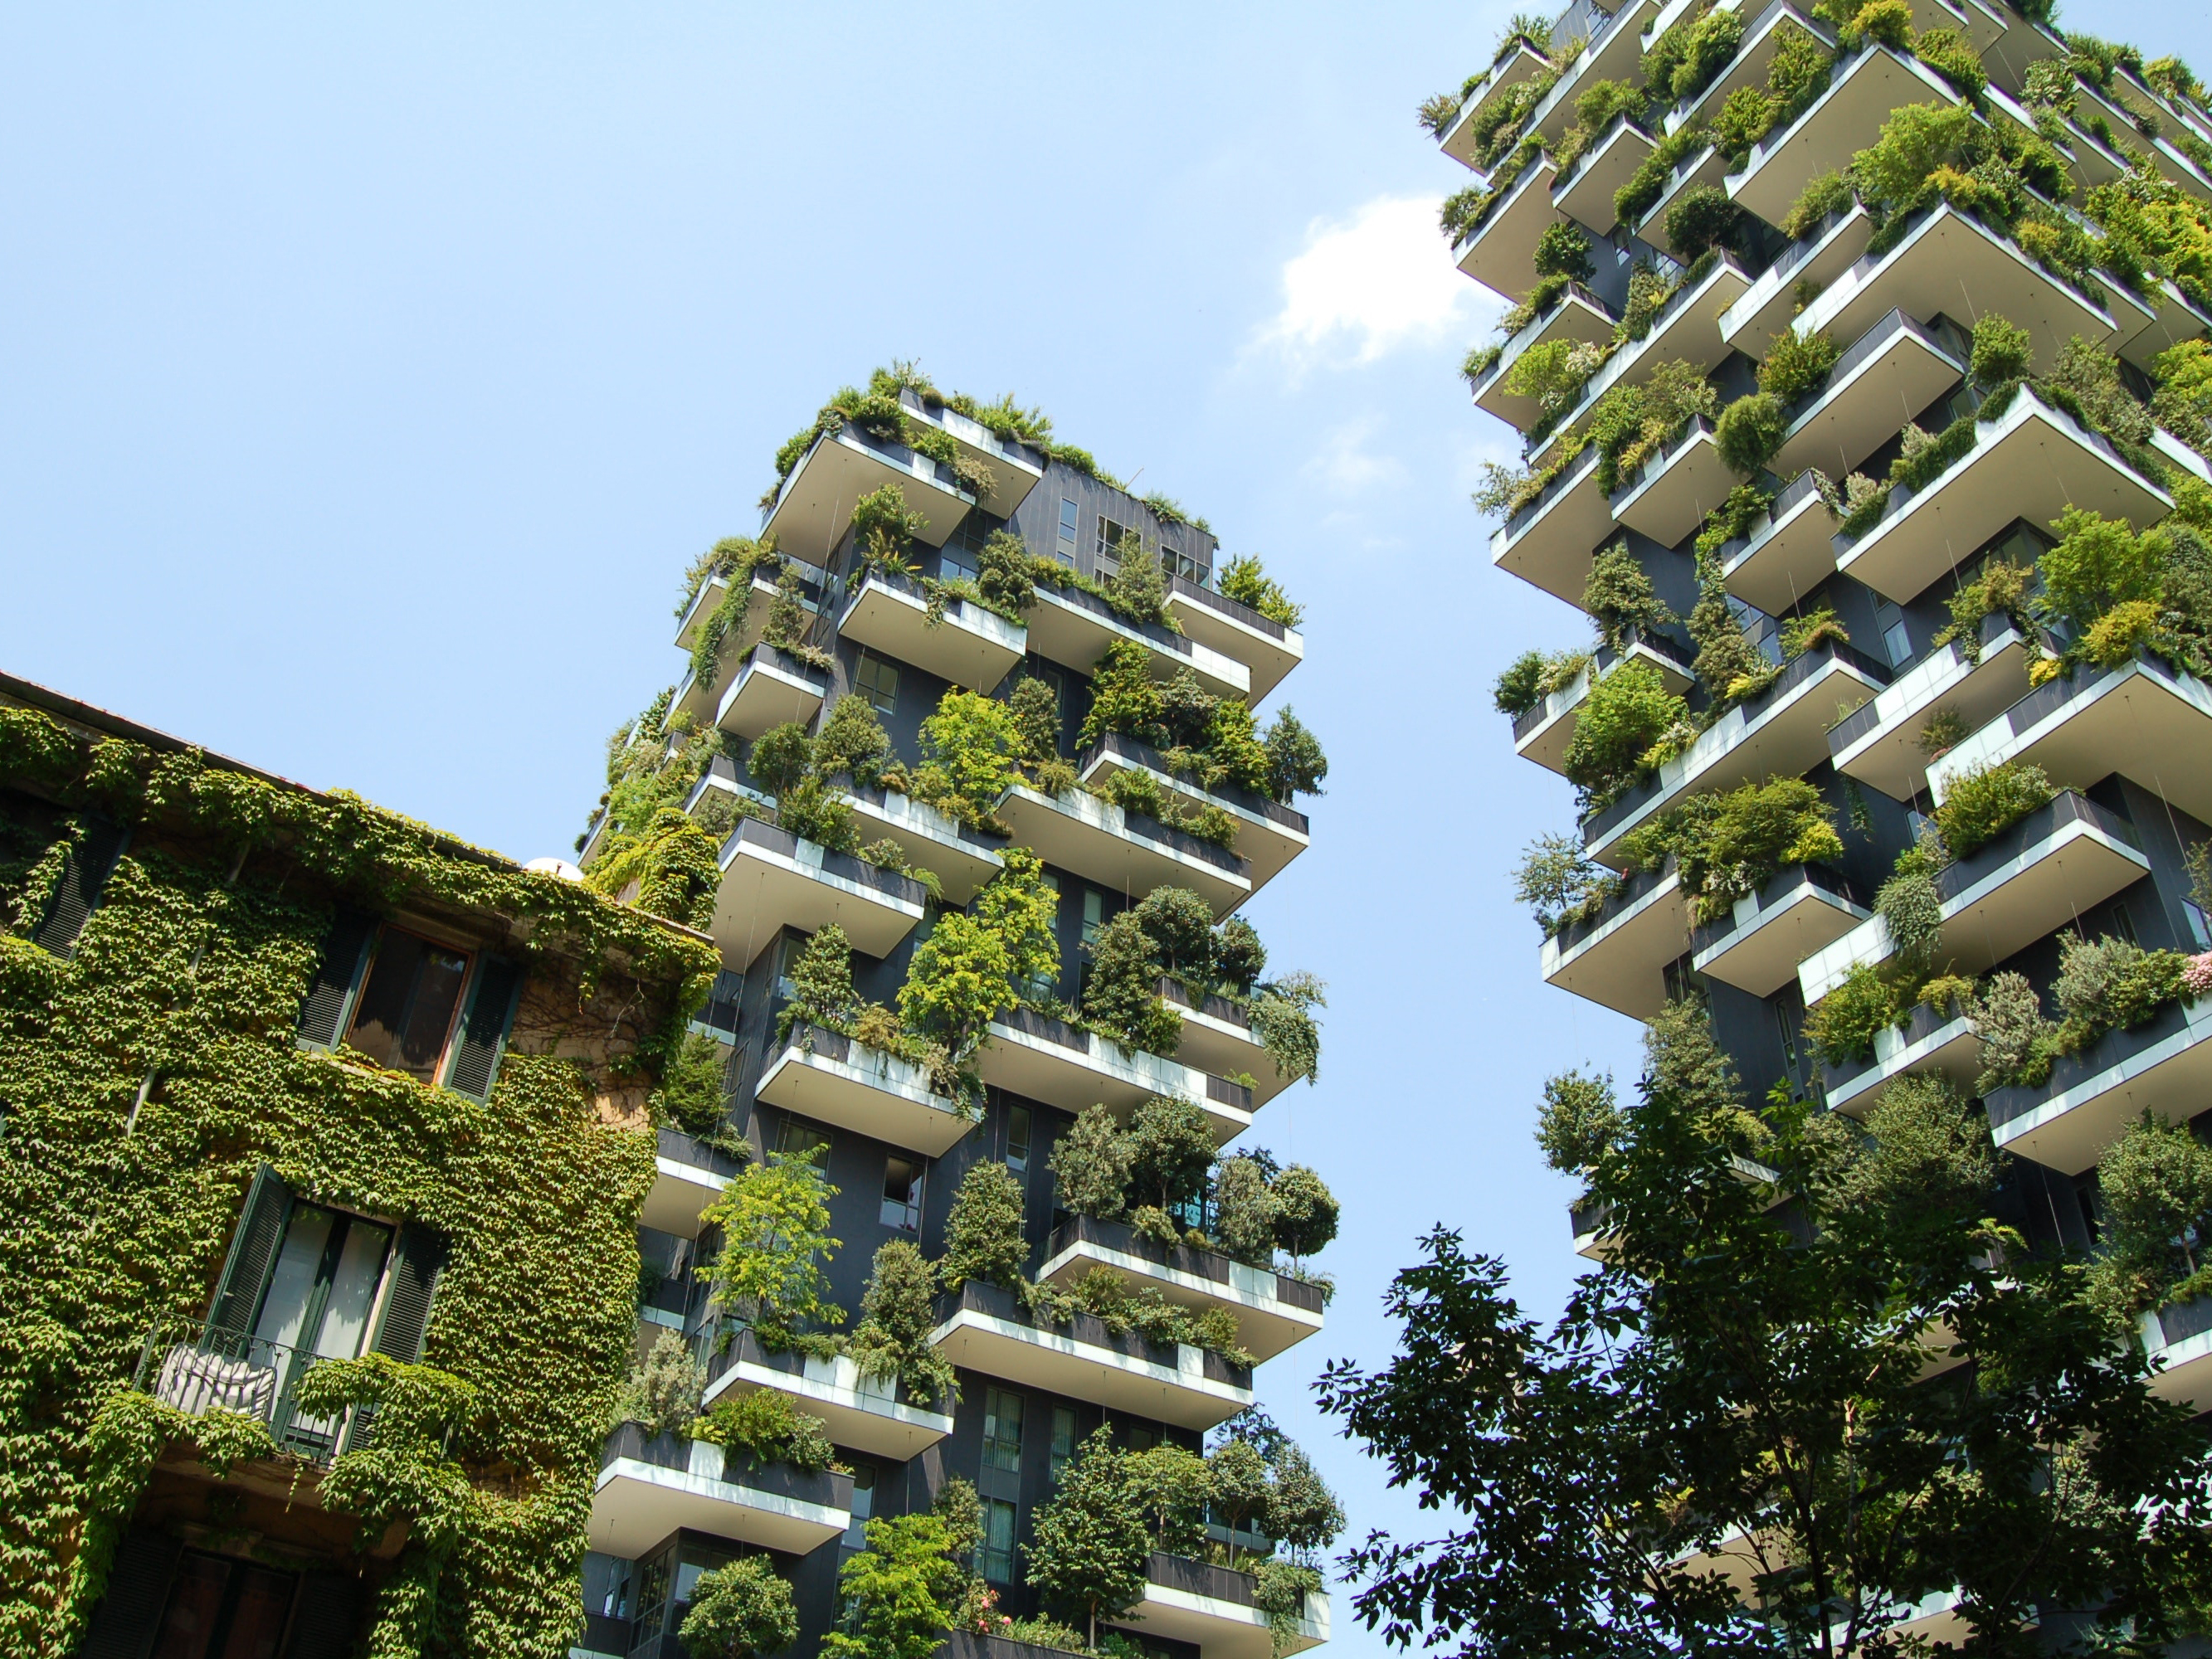 Australia leads global green building boom with its 2000th